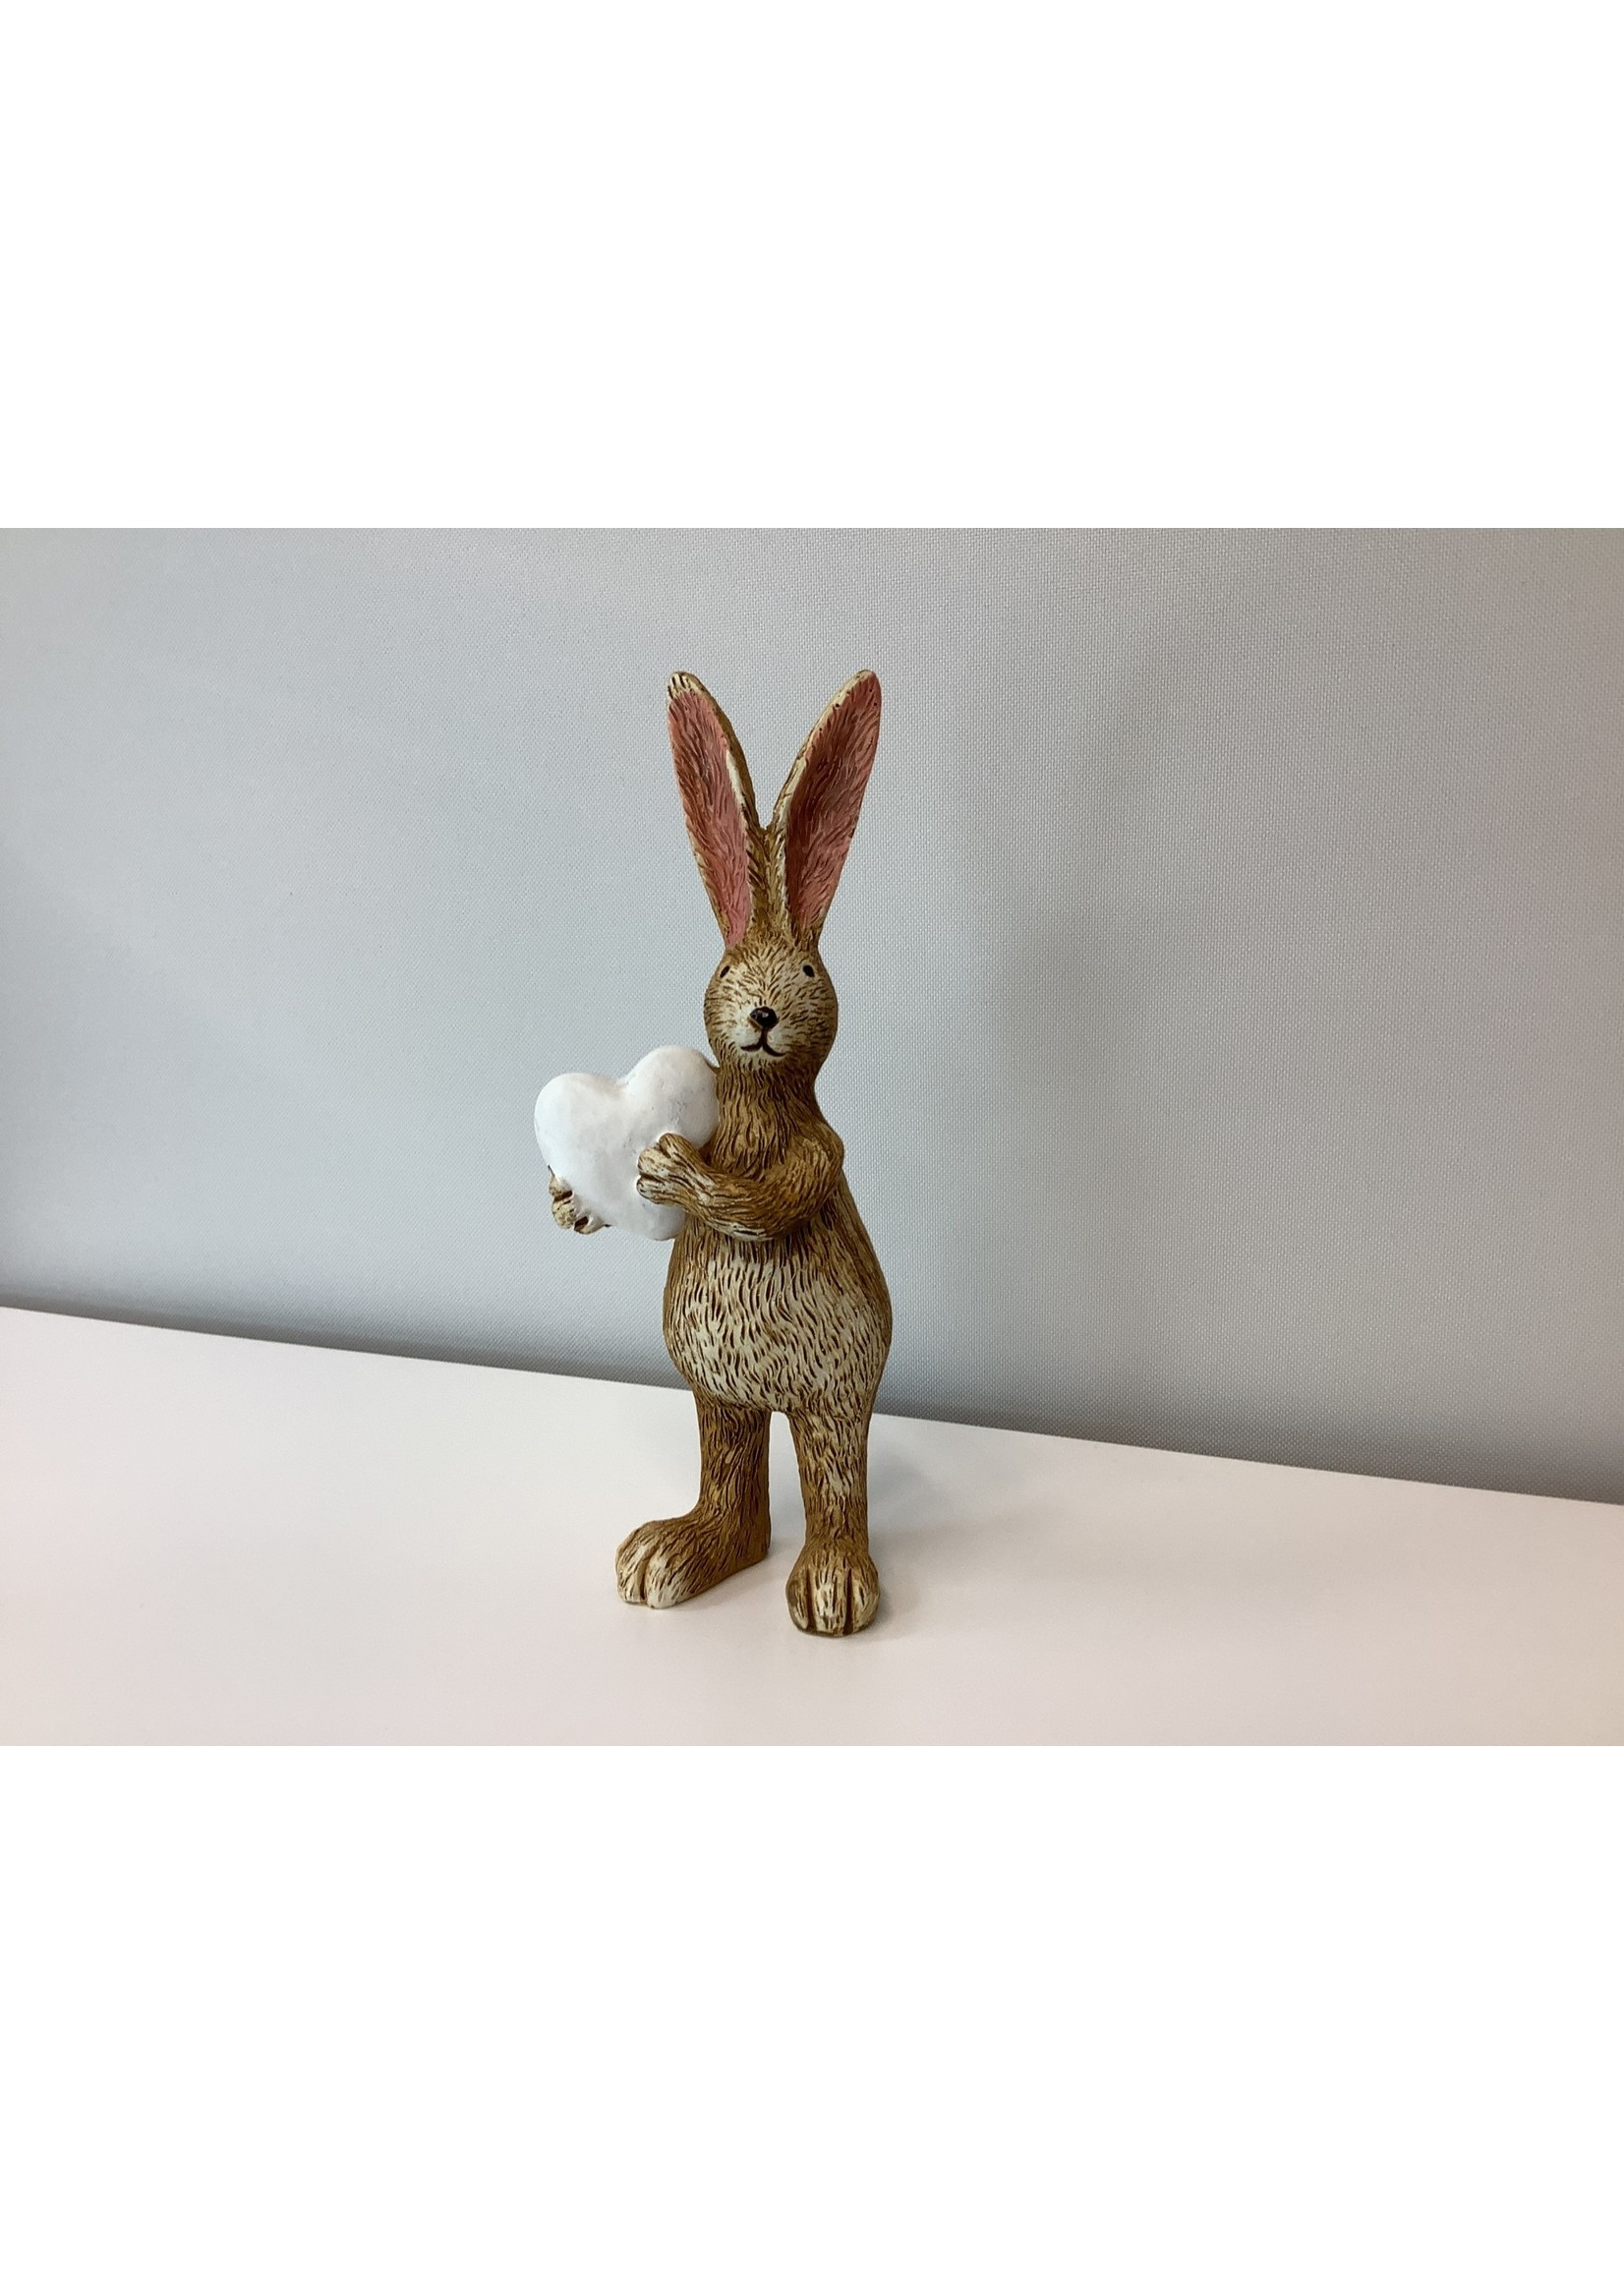 Standing rabbit with heart